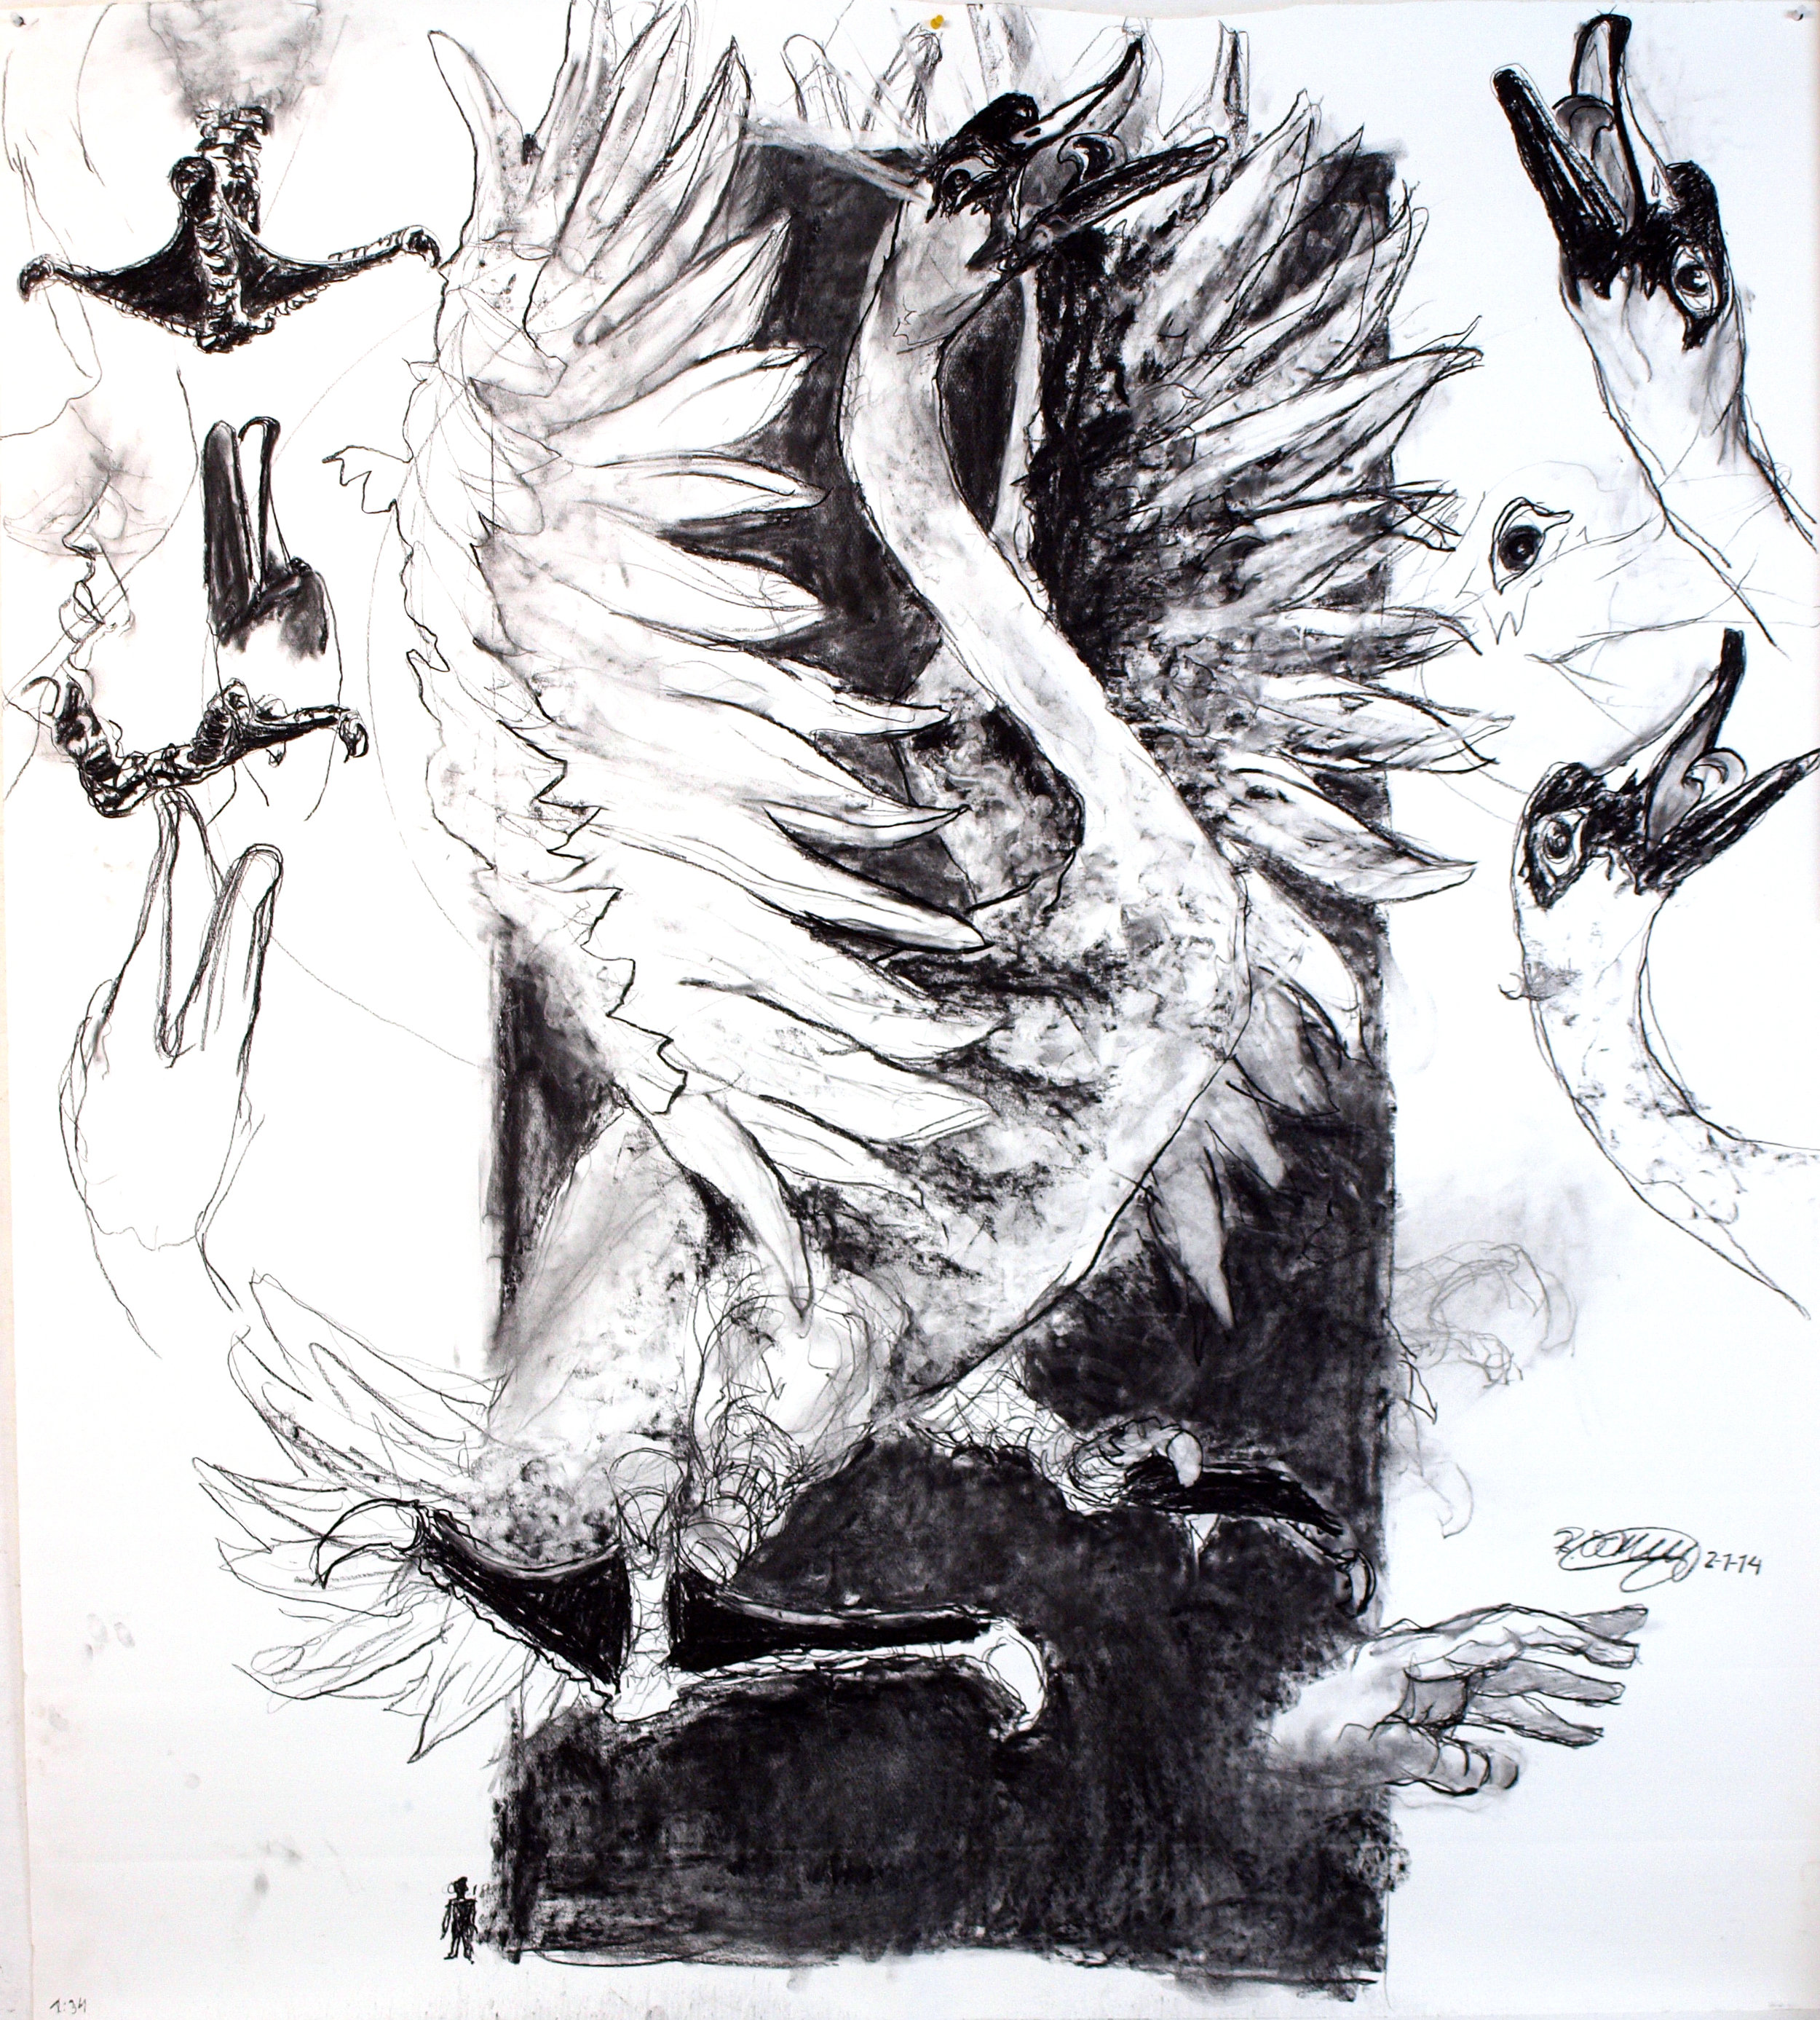 Sketch for Swan 171,5x150 cm charcoal on paper 2014